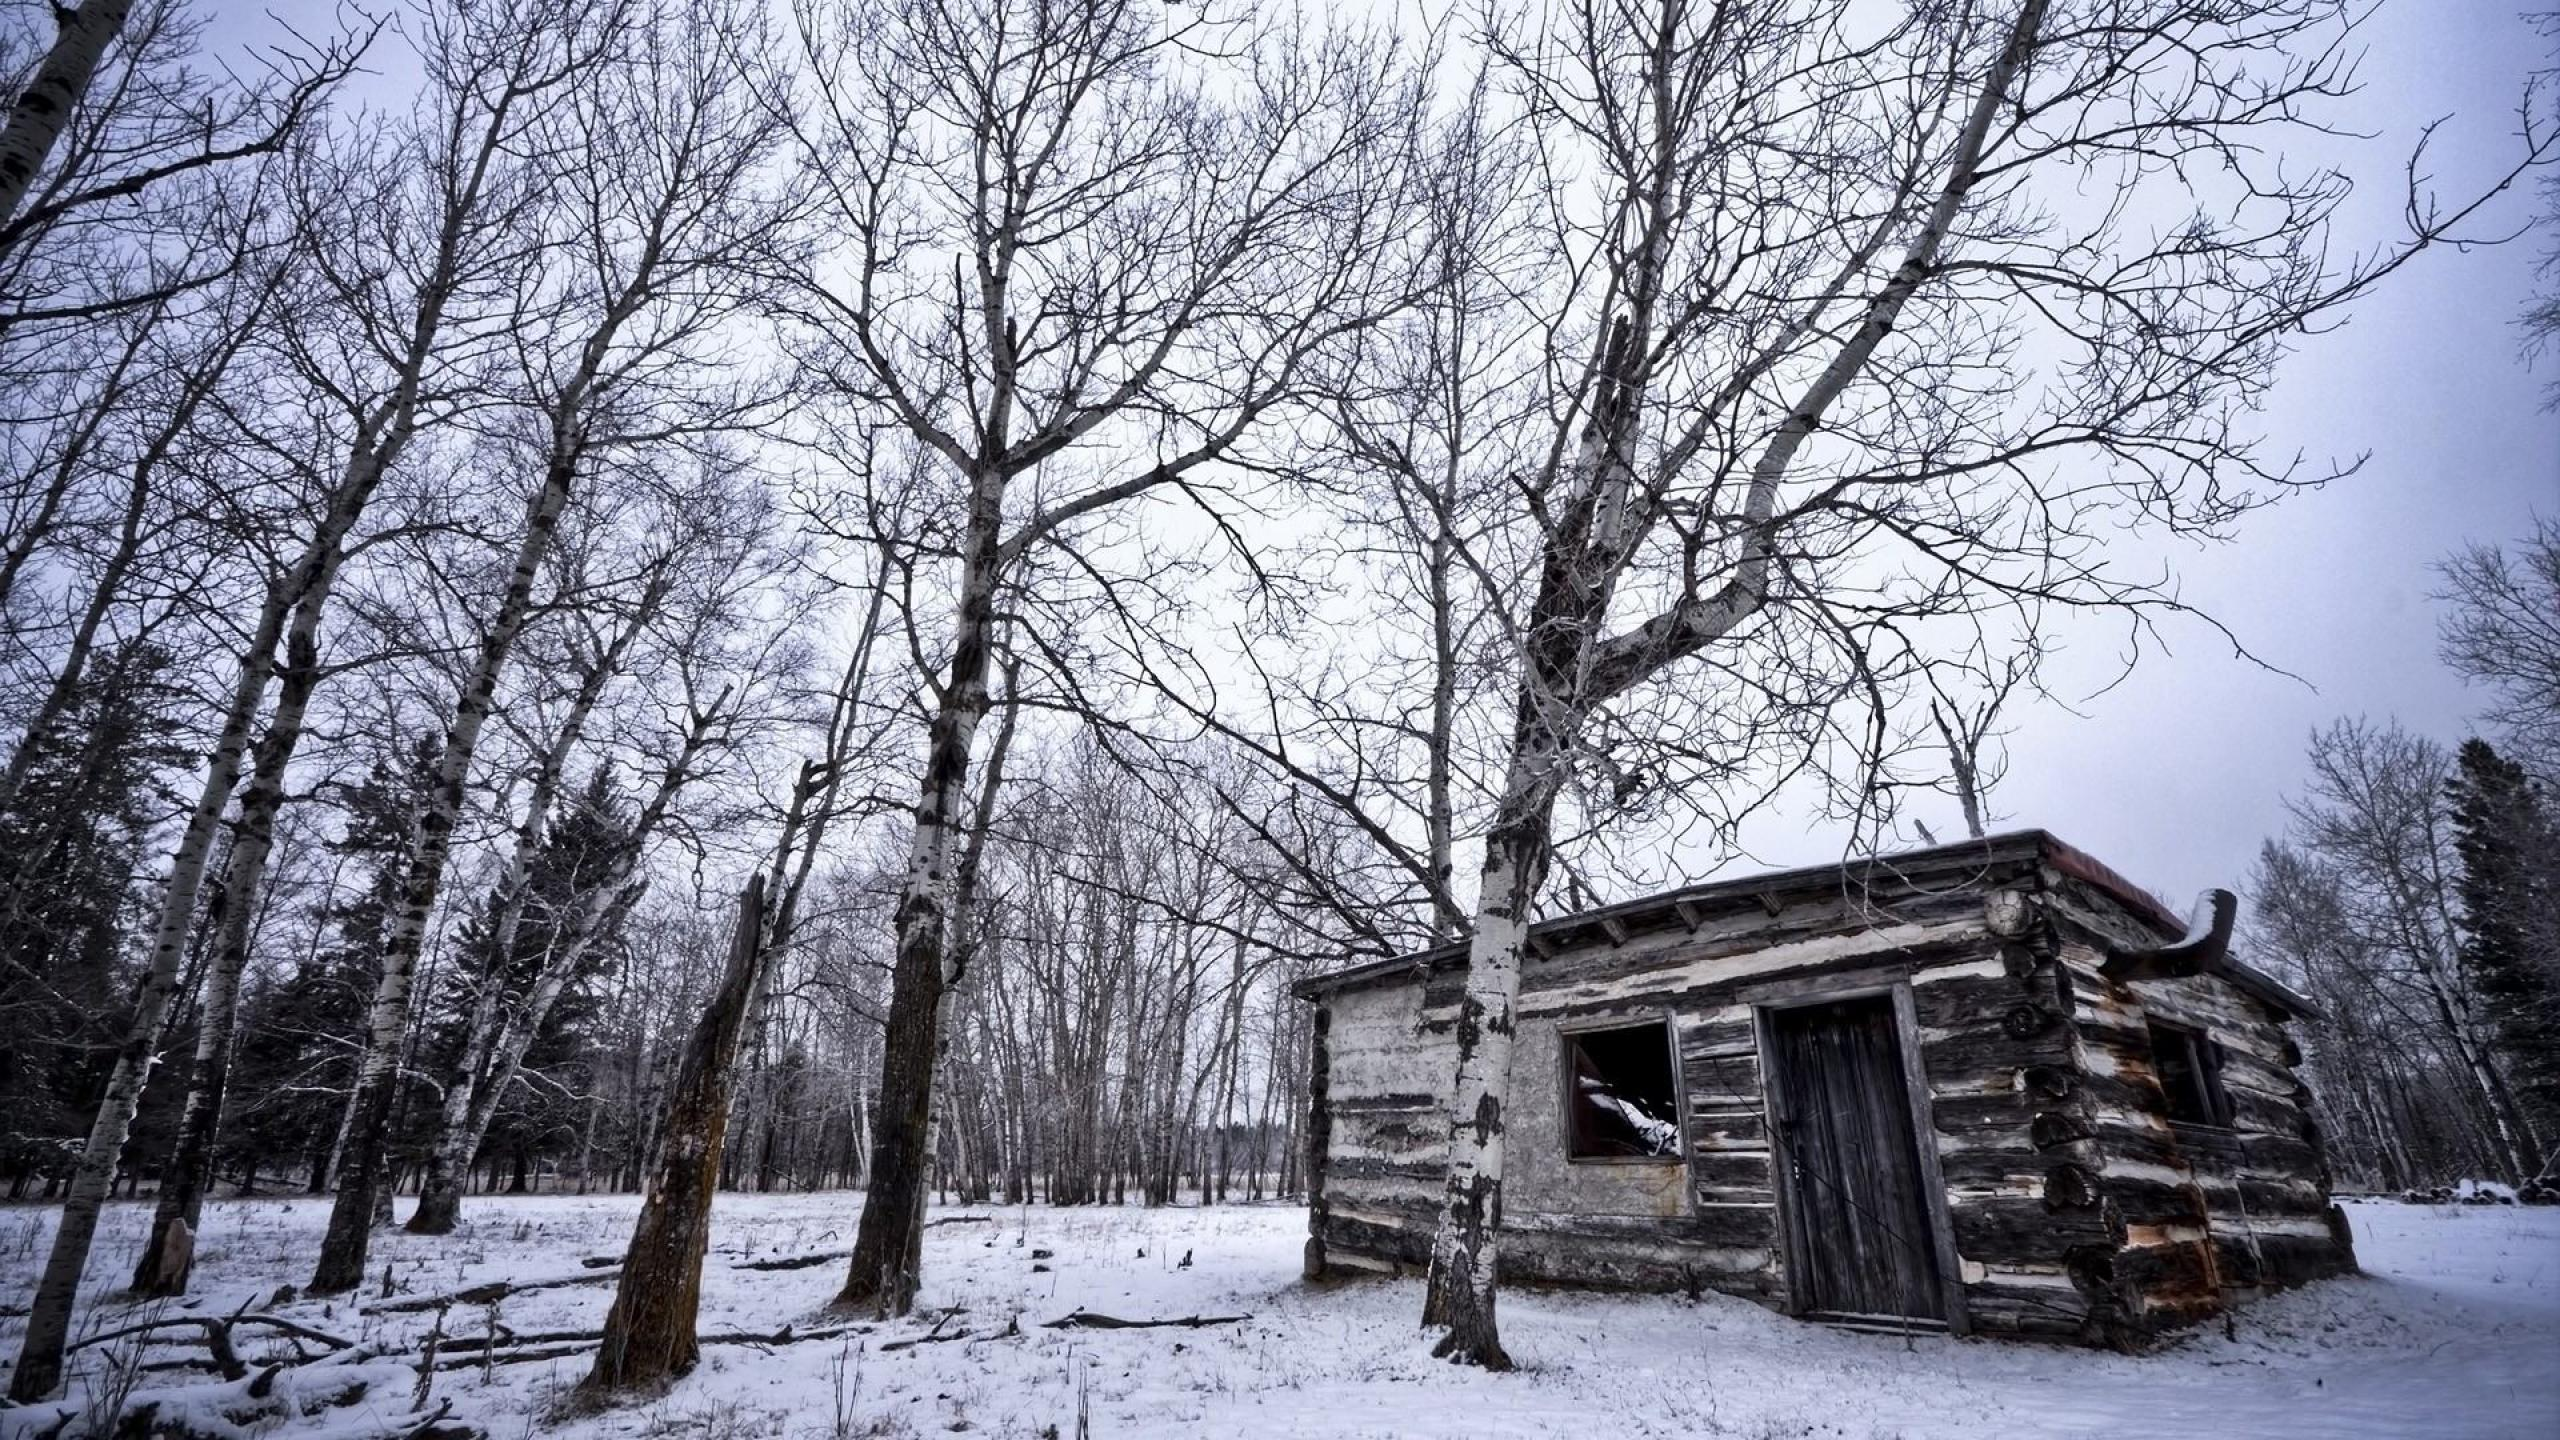 Wallpapers Backgrounds   wallpaper background nature winter cabin 2560x1440